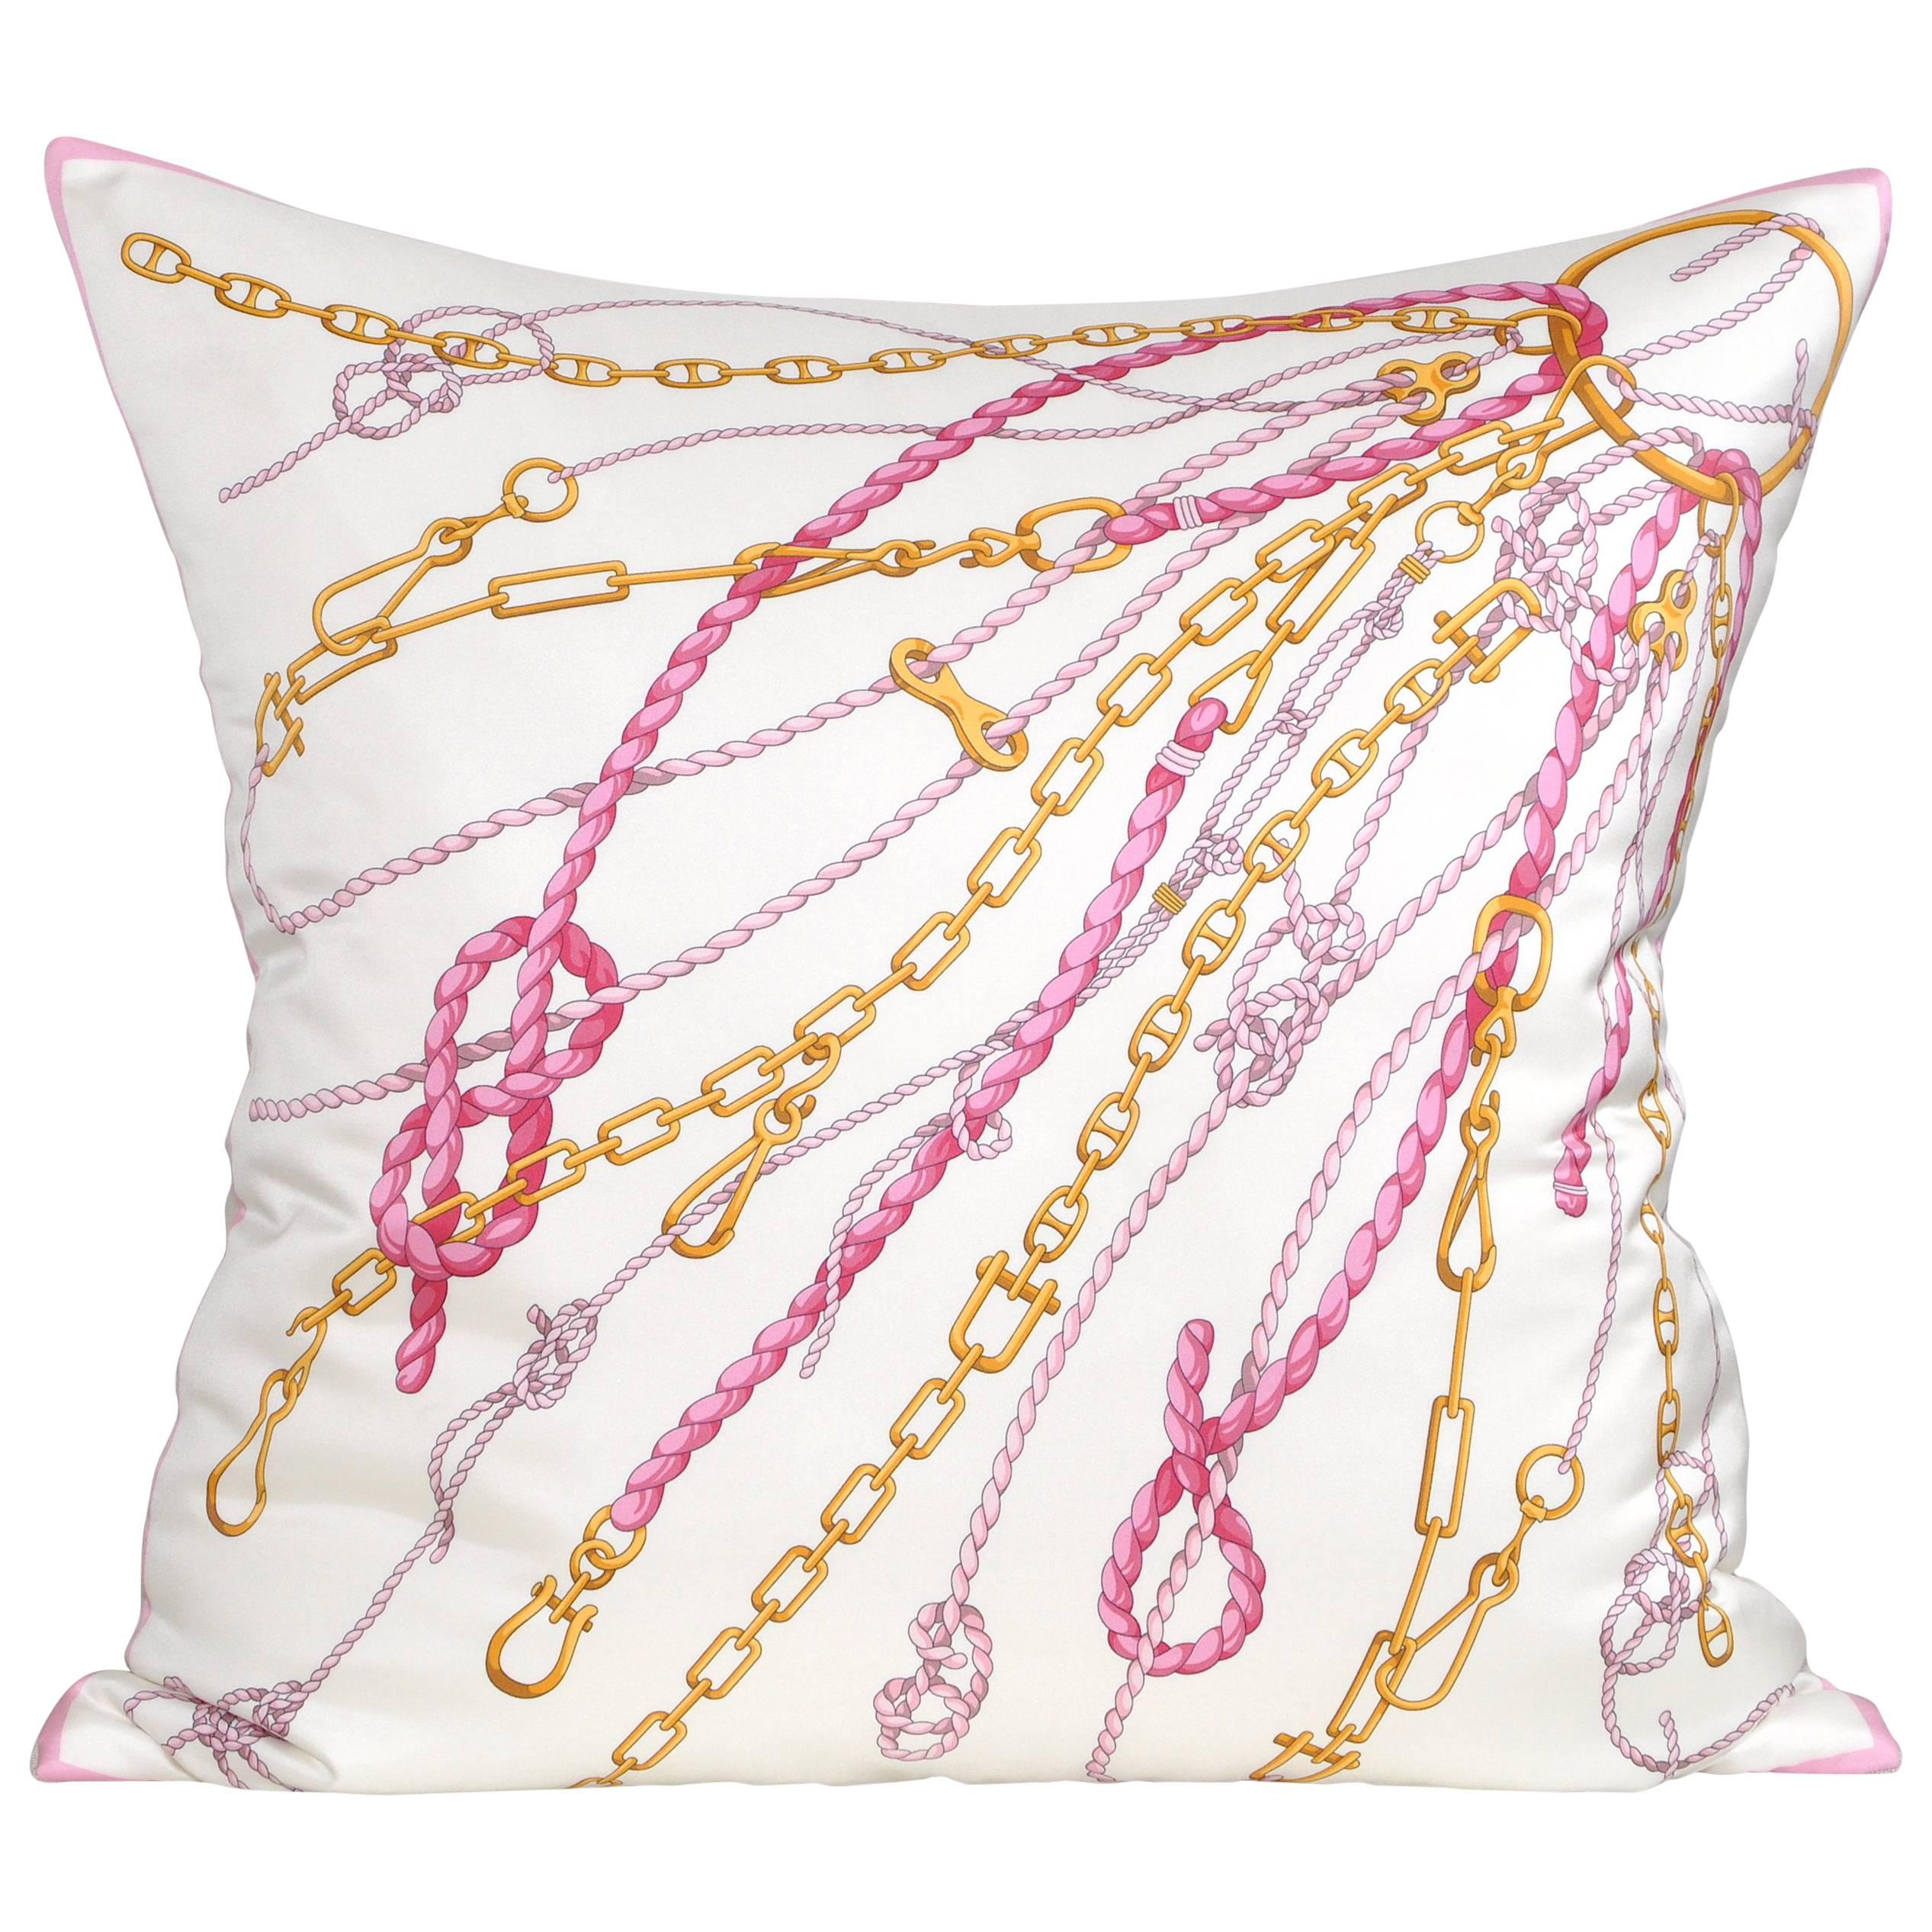 de background custom twill on silk it pale pillows throw pillow earlham in gournay pink node cushions design colours